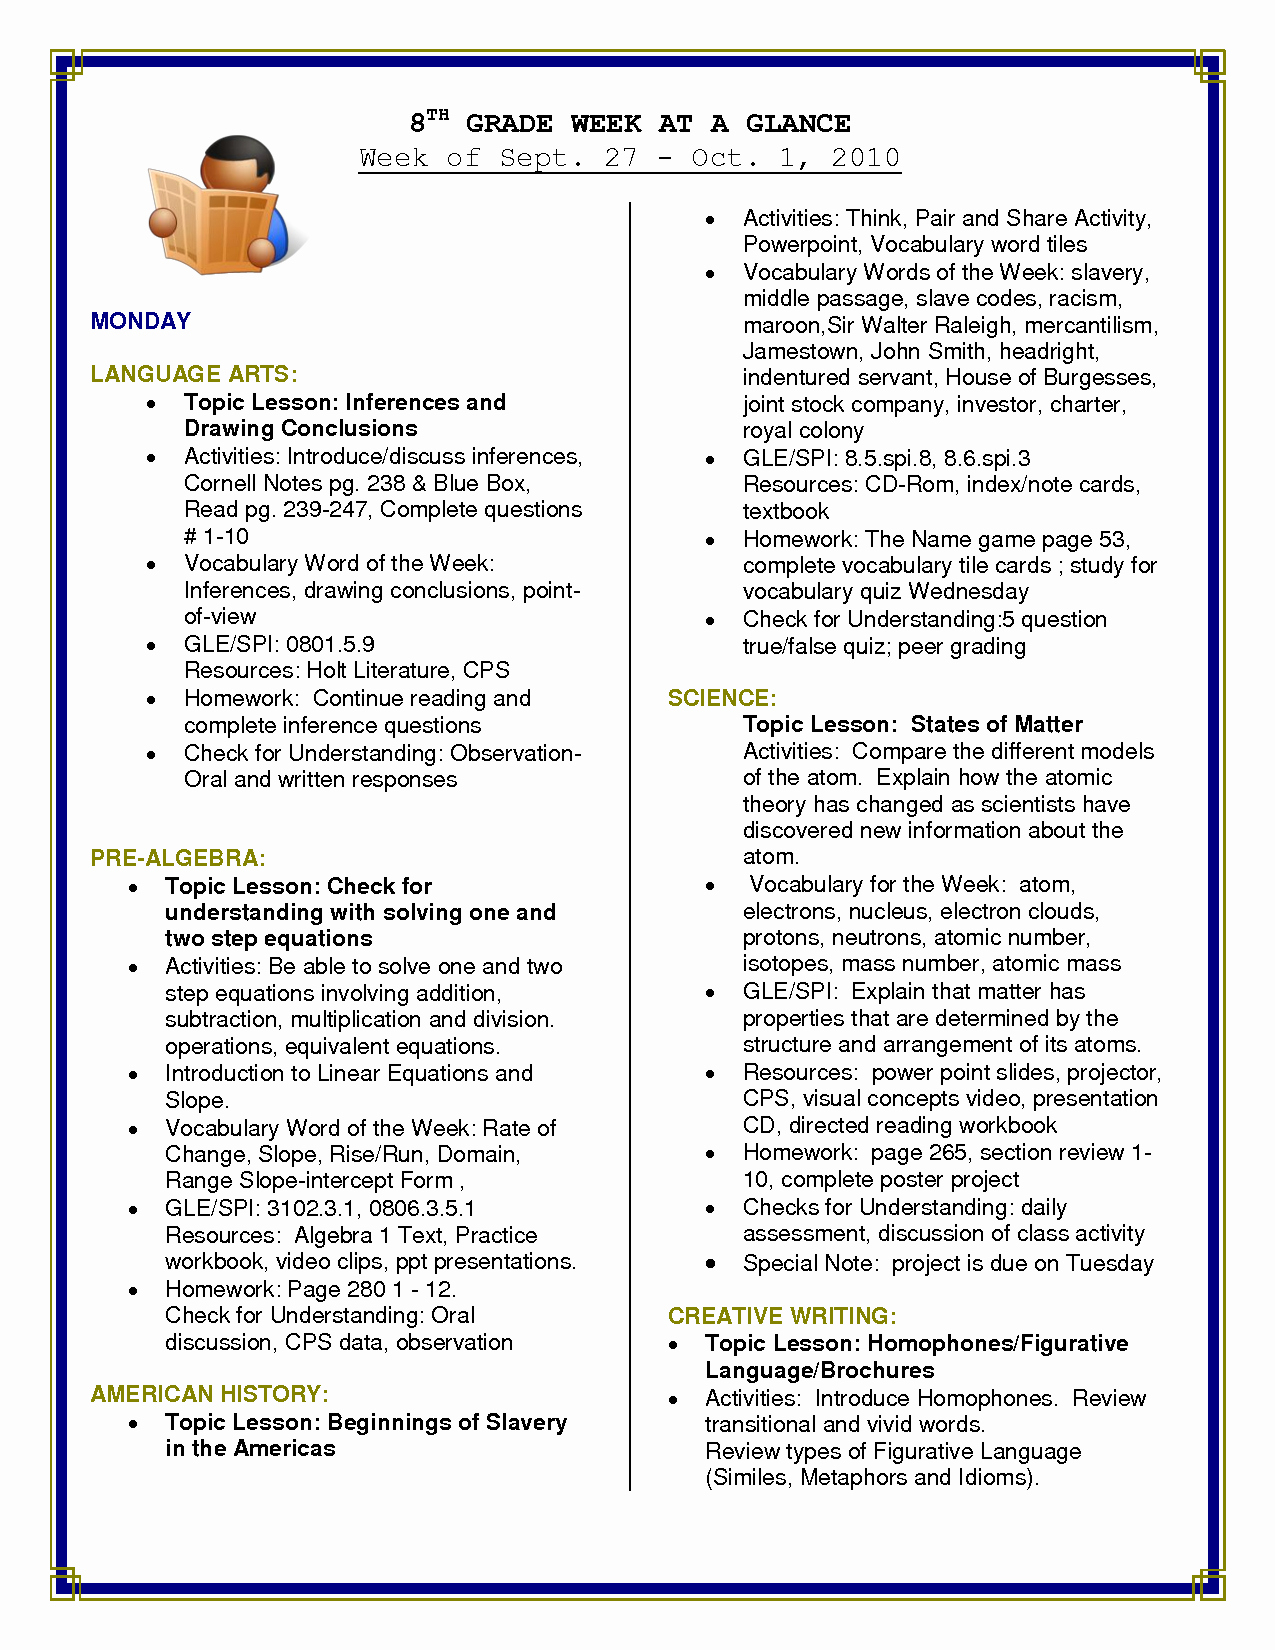 20 Reading Comprehension For 7Th Grade Free Worksheets - Free   Free Printable Us History Worksheets